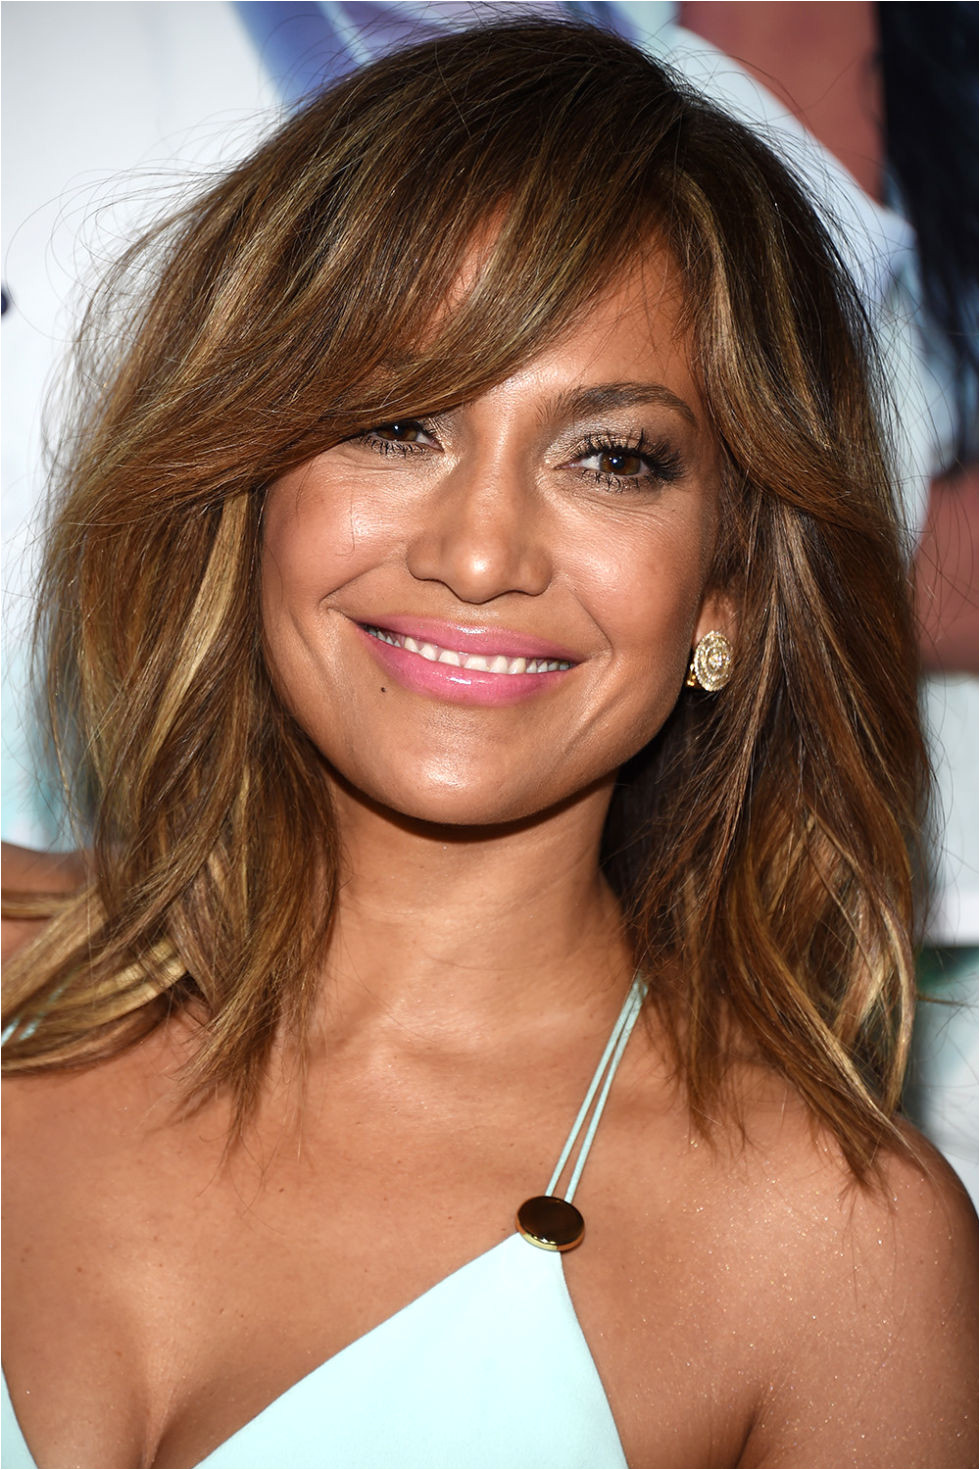 Haircut Jennifer Lopez the Best New Ways to Wear Bangs Makeup Looks Pinterest